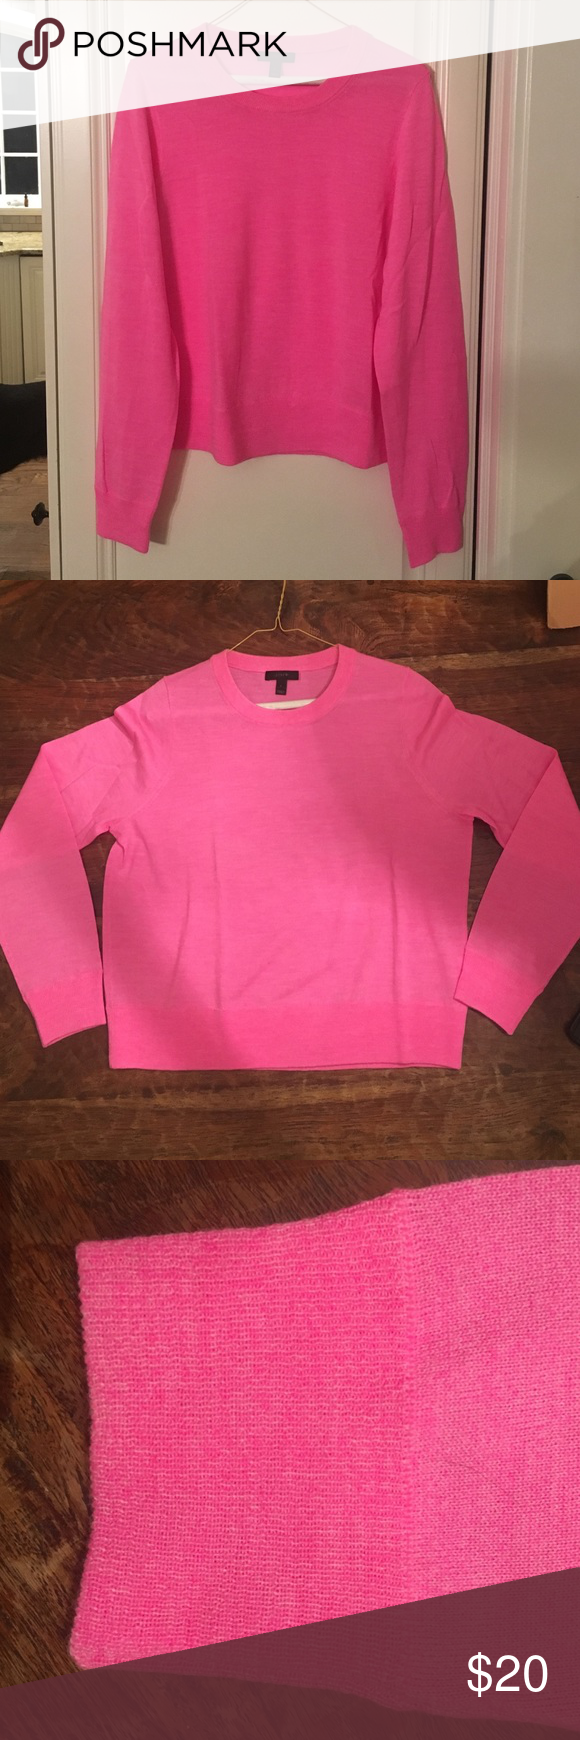 Pink J.Crew sweater Barely worn, baby pink sweater J. Crew Sweaters Crew & Scoop Necks